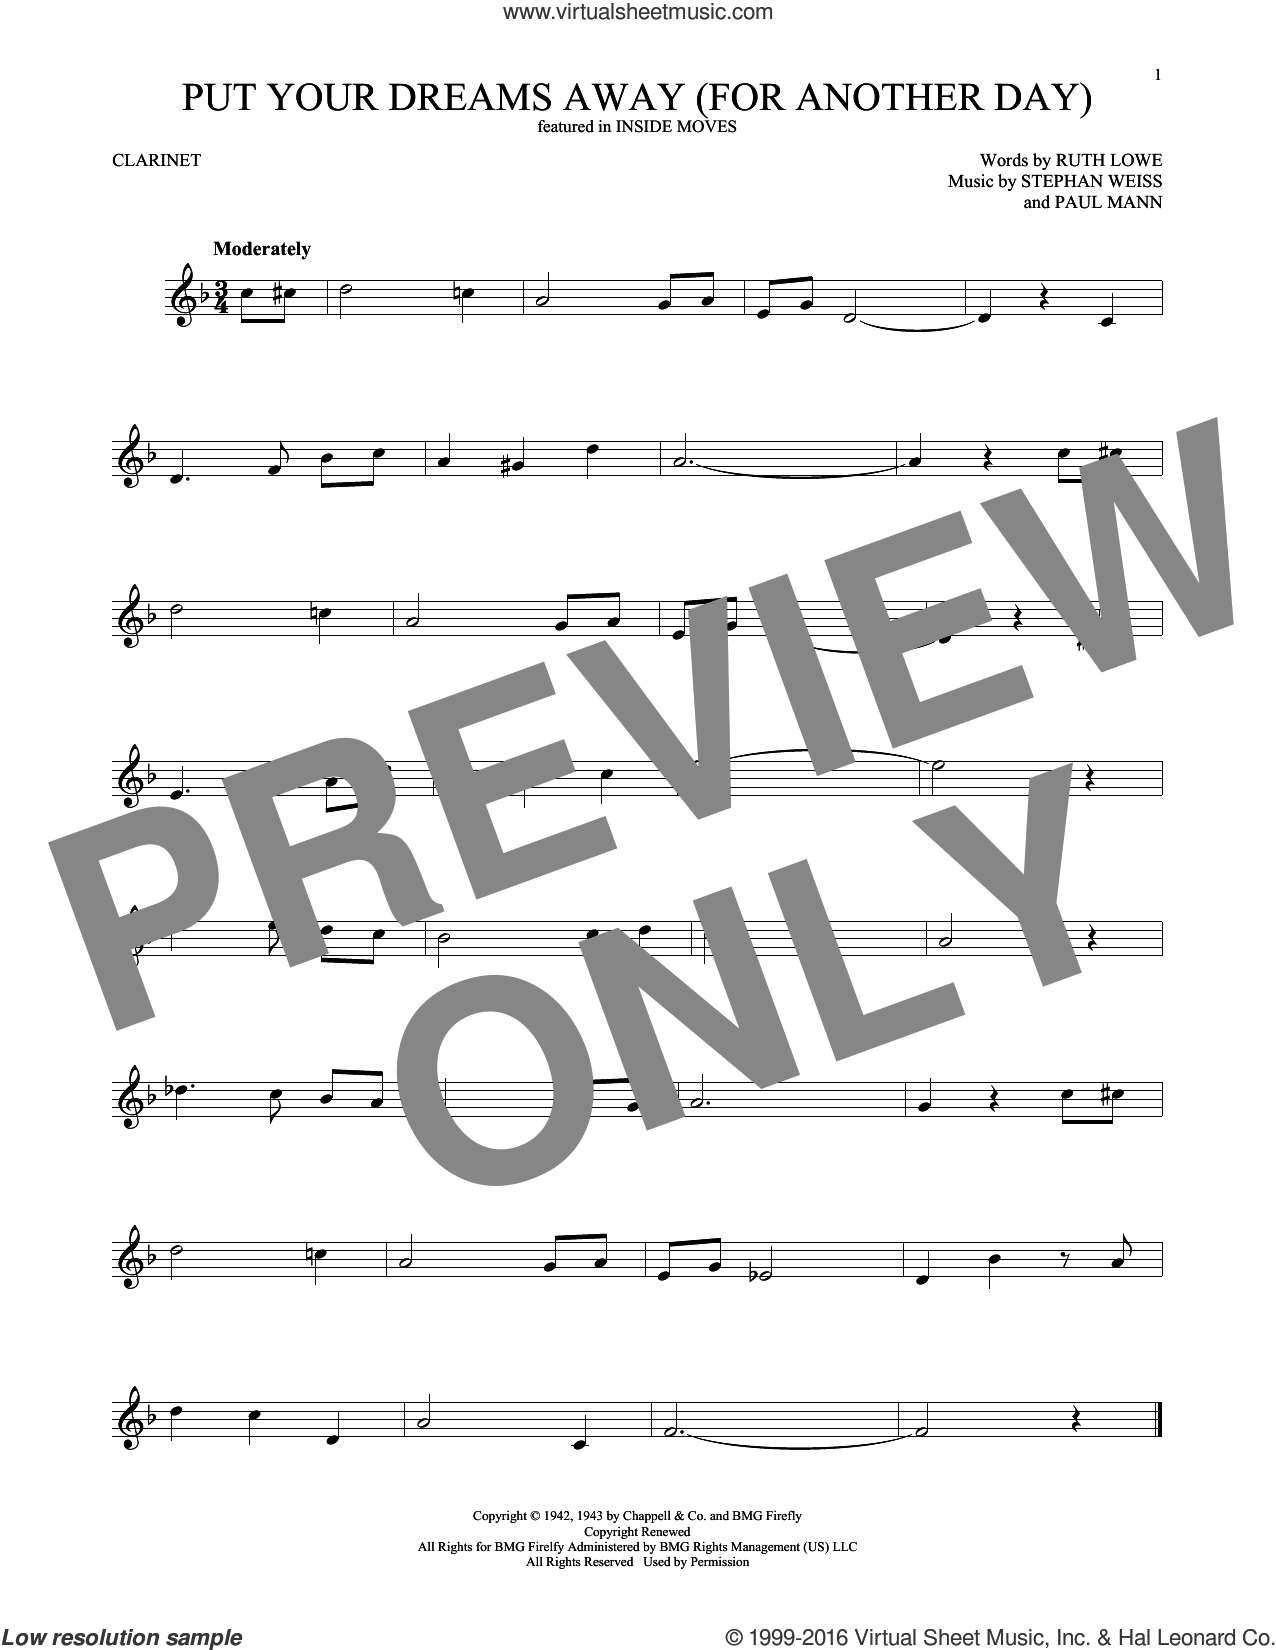 Put Your Dreams Away (For Another Day) sheet music for clarinet solo by Frank Sinatra, Paul Mann, Ruth Lowe and Stephen Weiss, intermediate skill level